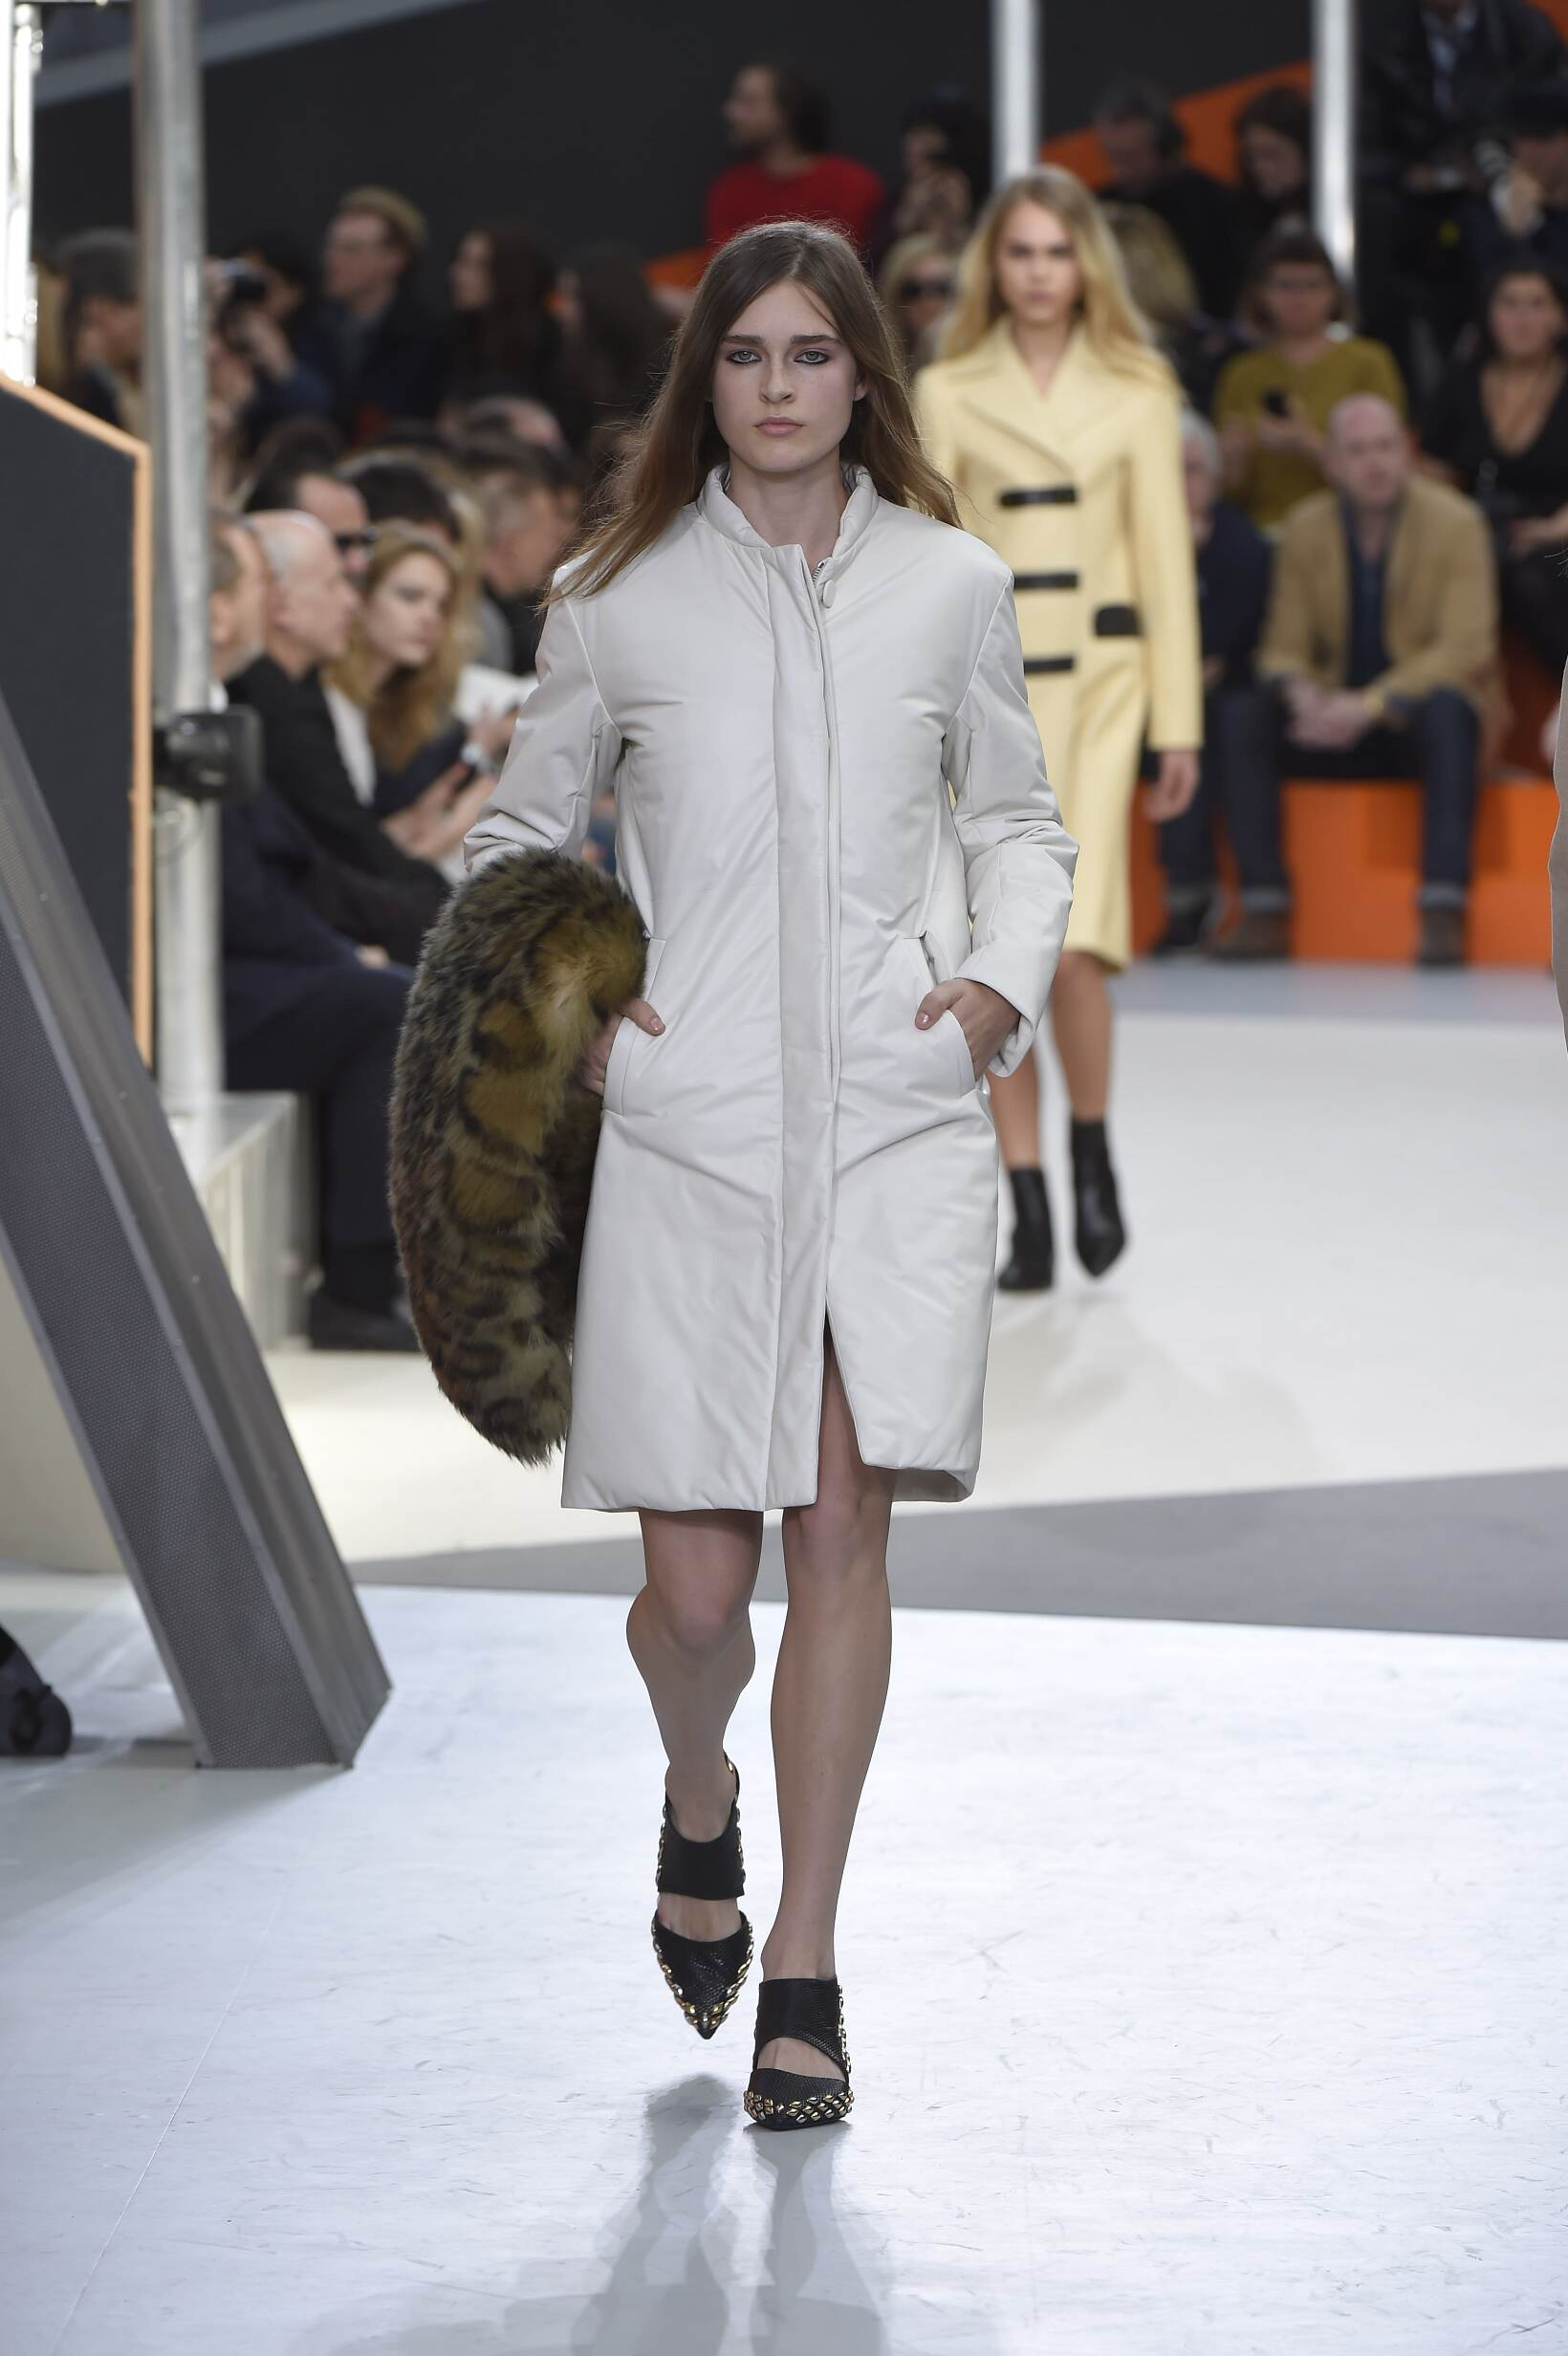 2015 Fashion Woman Model Louis Vuitton Collection Catwalk